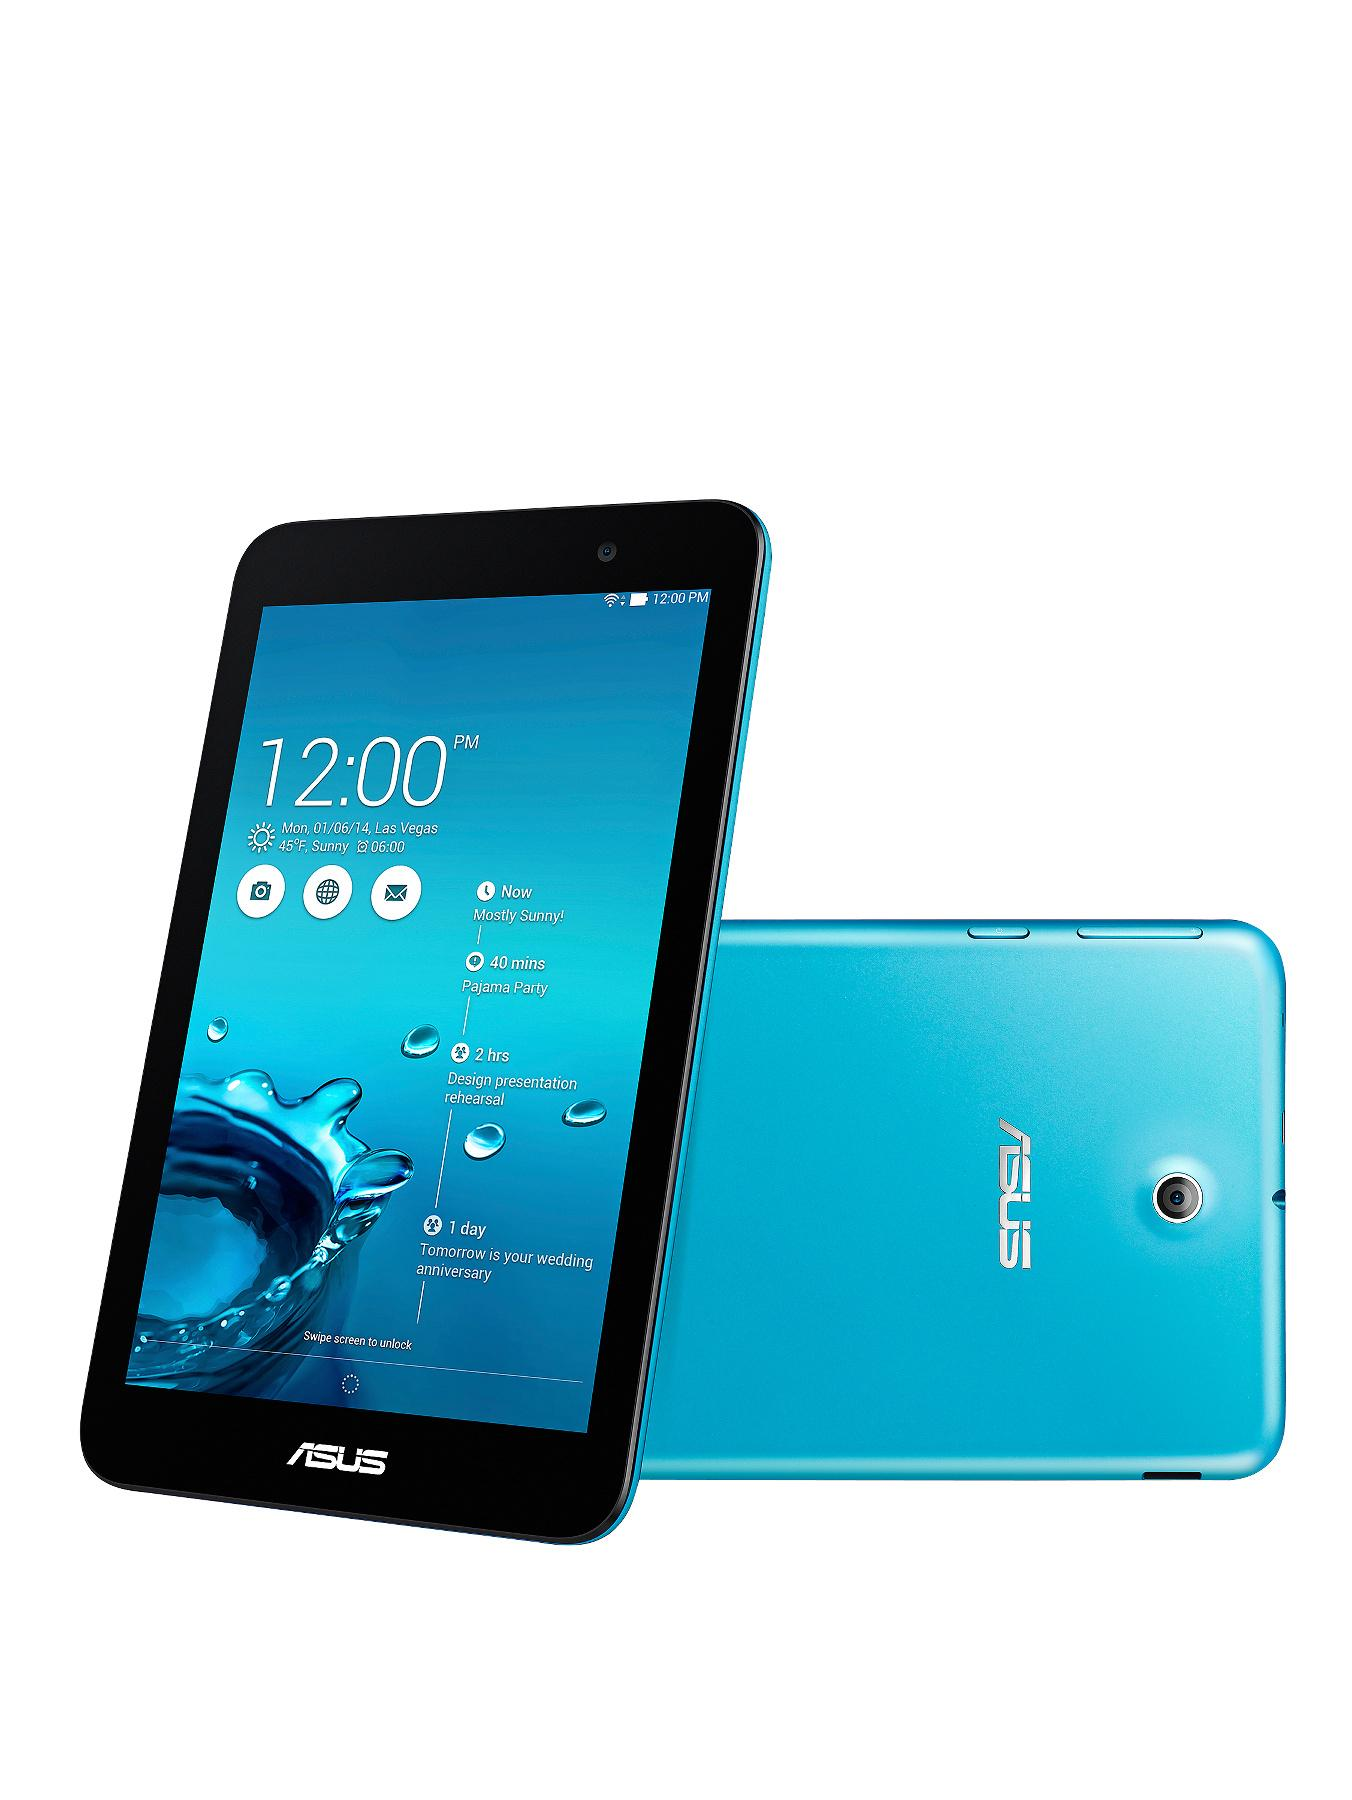 Asus MeMO Pad 7 ME176CX Intel Atom Quad Core Processor, 1Gb RAM, 16Gb Storage, Wi-Fi, 7 inch Tablet - Blue